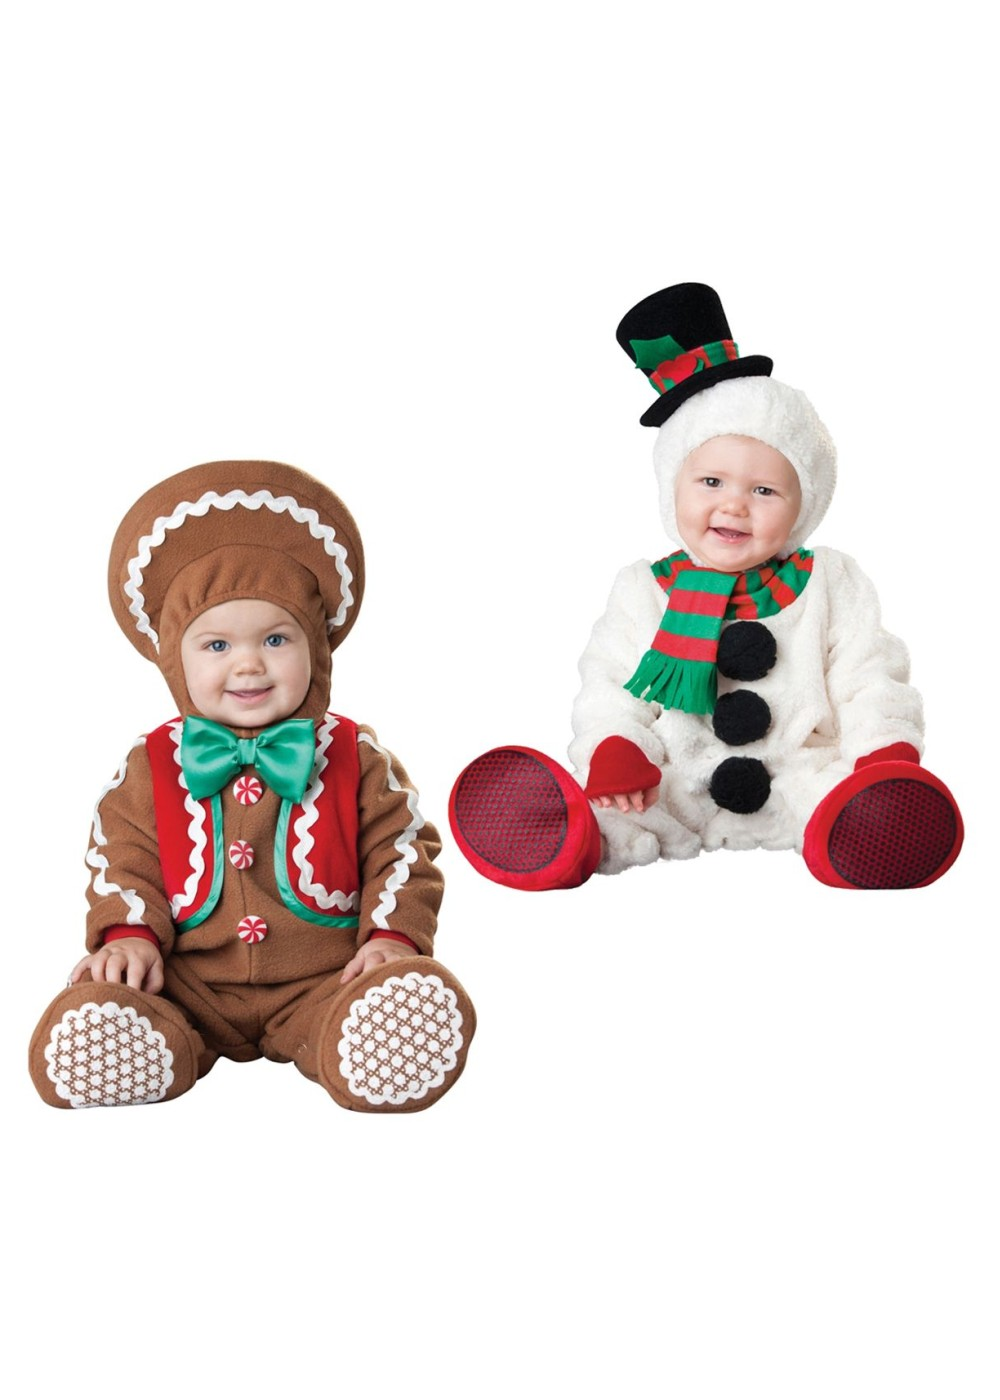 Christmas Gingerbread Man And Snowman Baby Boys Costumes  sc 1 st  Meningrey & Gingerbread Man Baby Costume - Meningrey